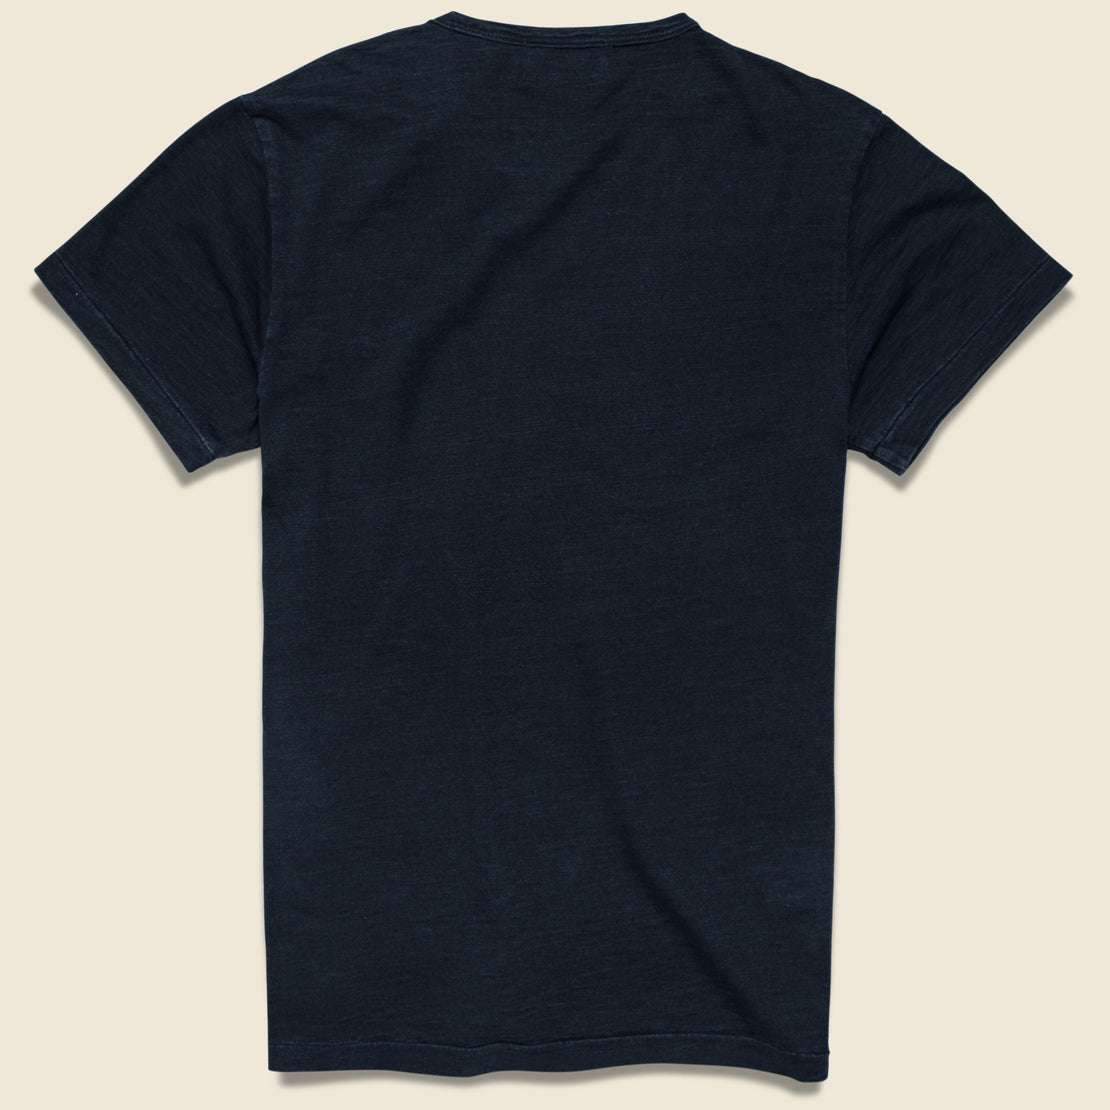 Rinsed Pocket Tee - Indigo